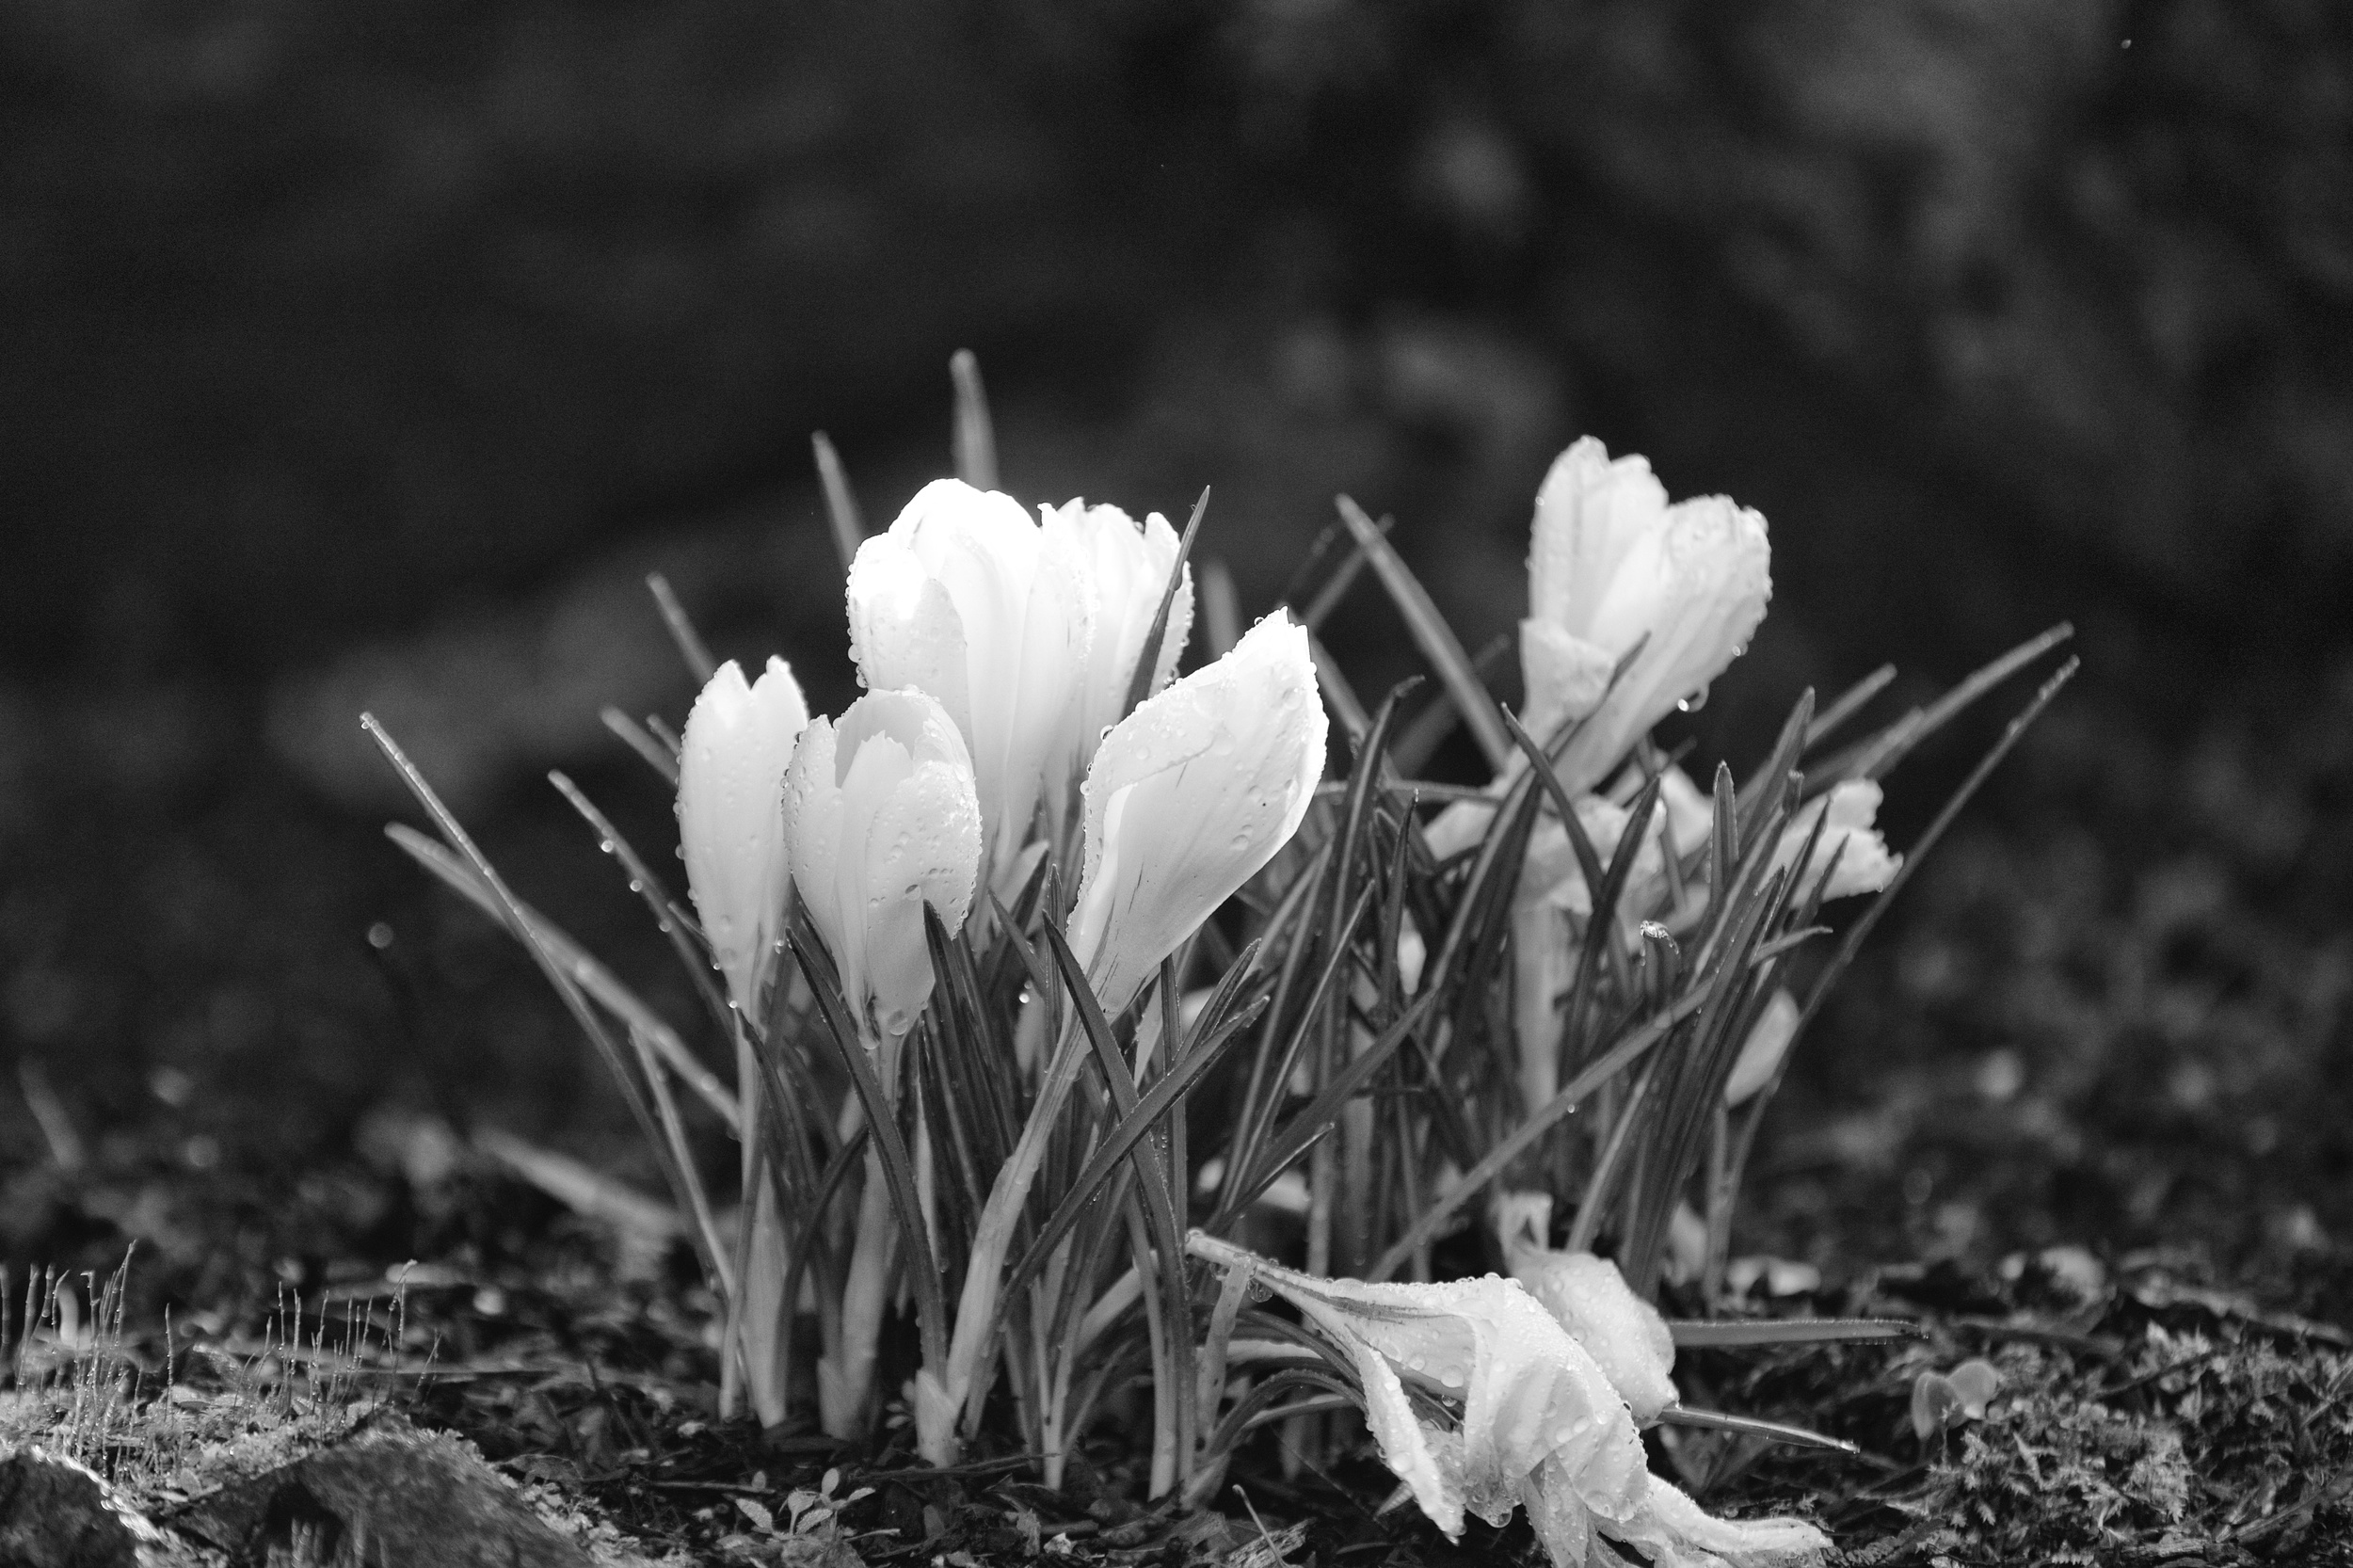 2016-03-05 at 11-14-33 Flower, Black & White, Droplet, Water, Mist, White, Snow Drop.jpg